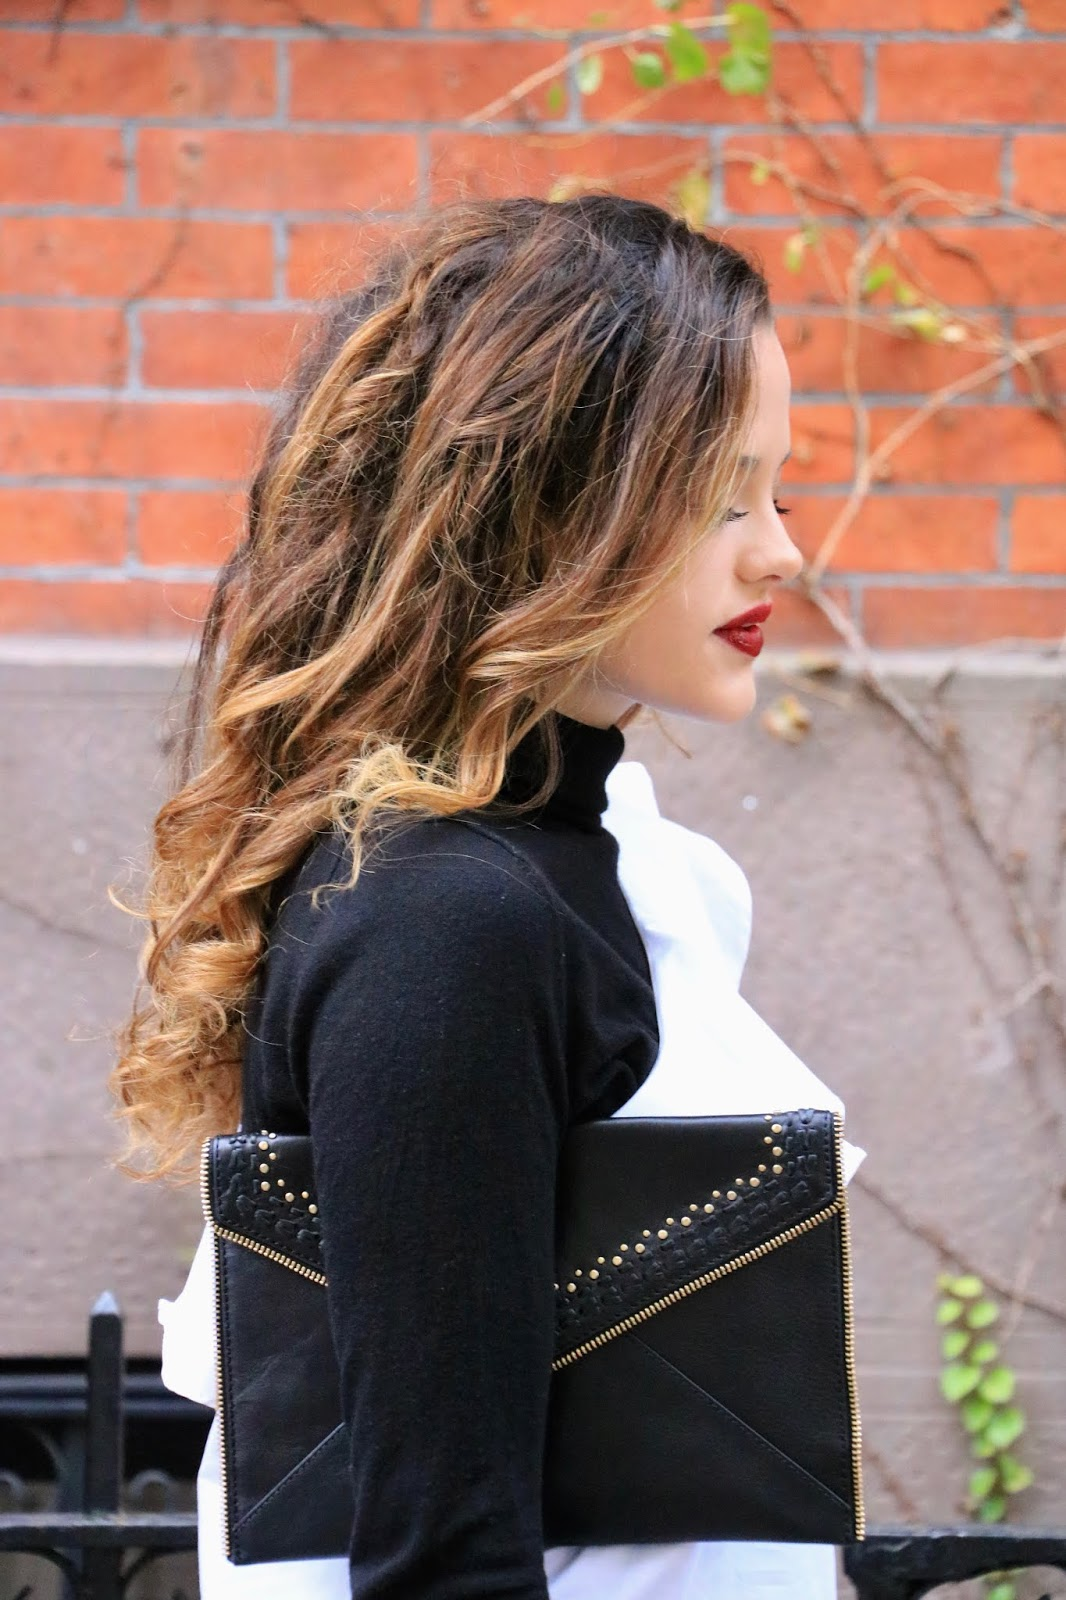 Nyc fashion blogger Kathleen Harper's holiday clutch by Rebecca Minkoff